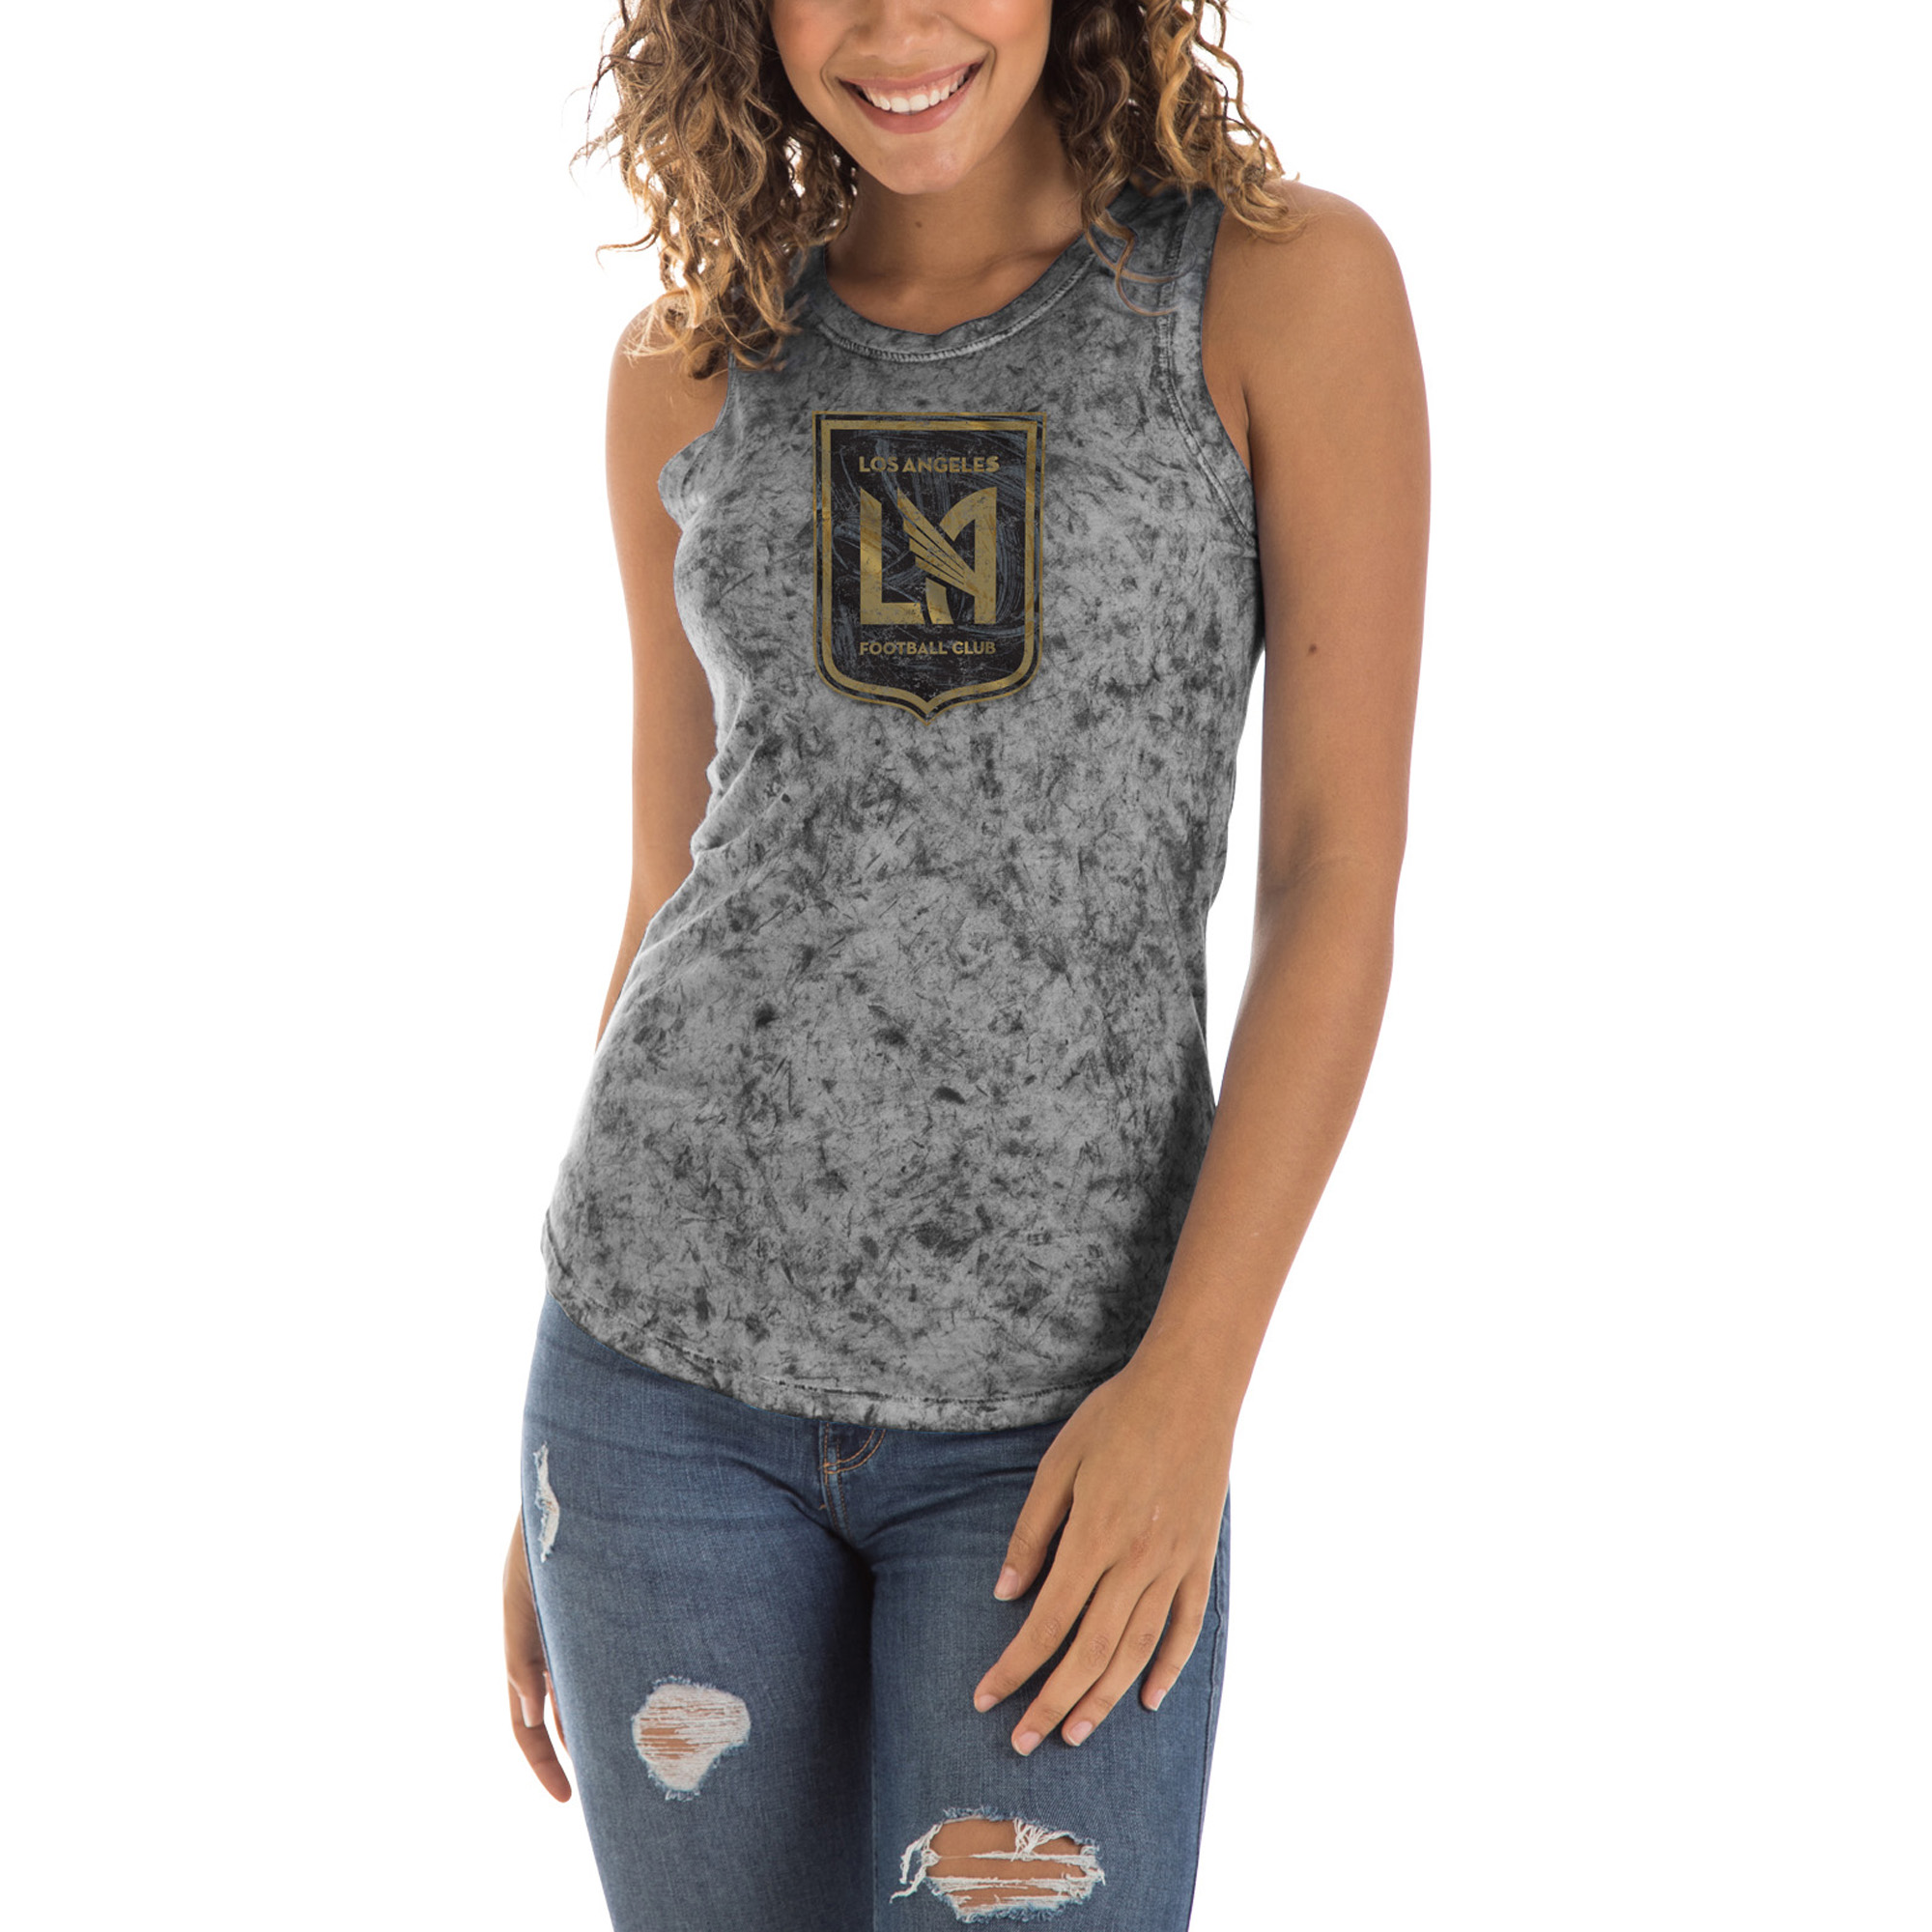 LAFC 5th & Ocean by New Era Women's Washes Mineral Dye Jersey Tank Top - Black